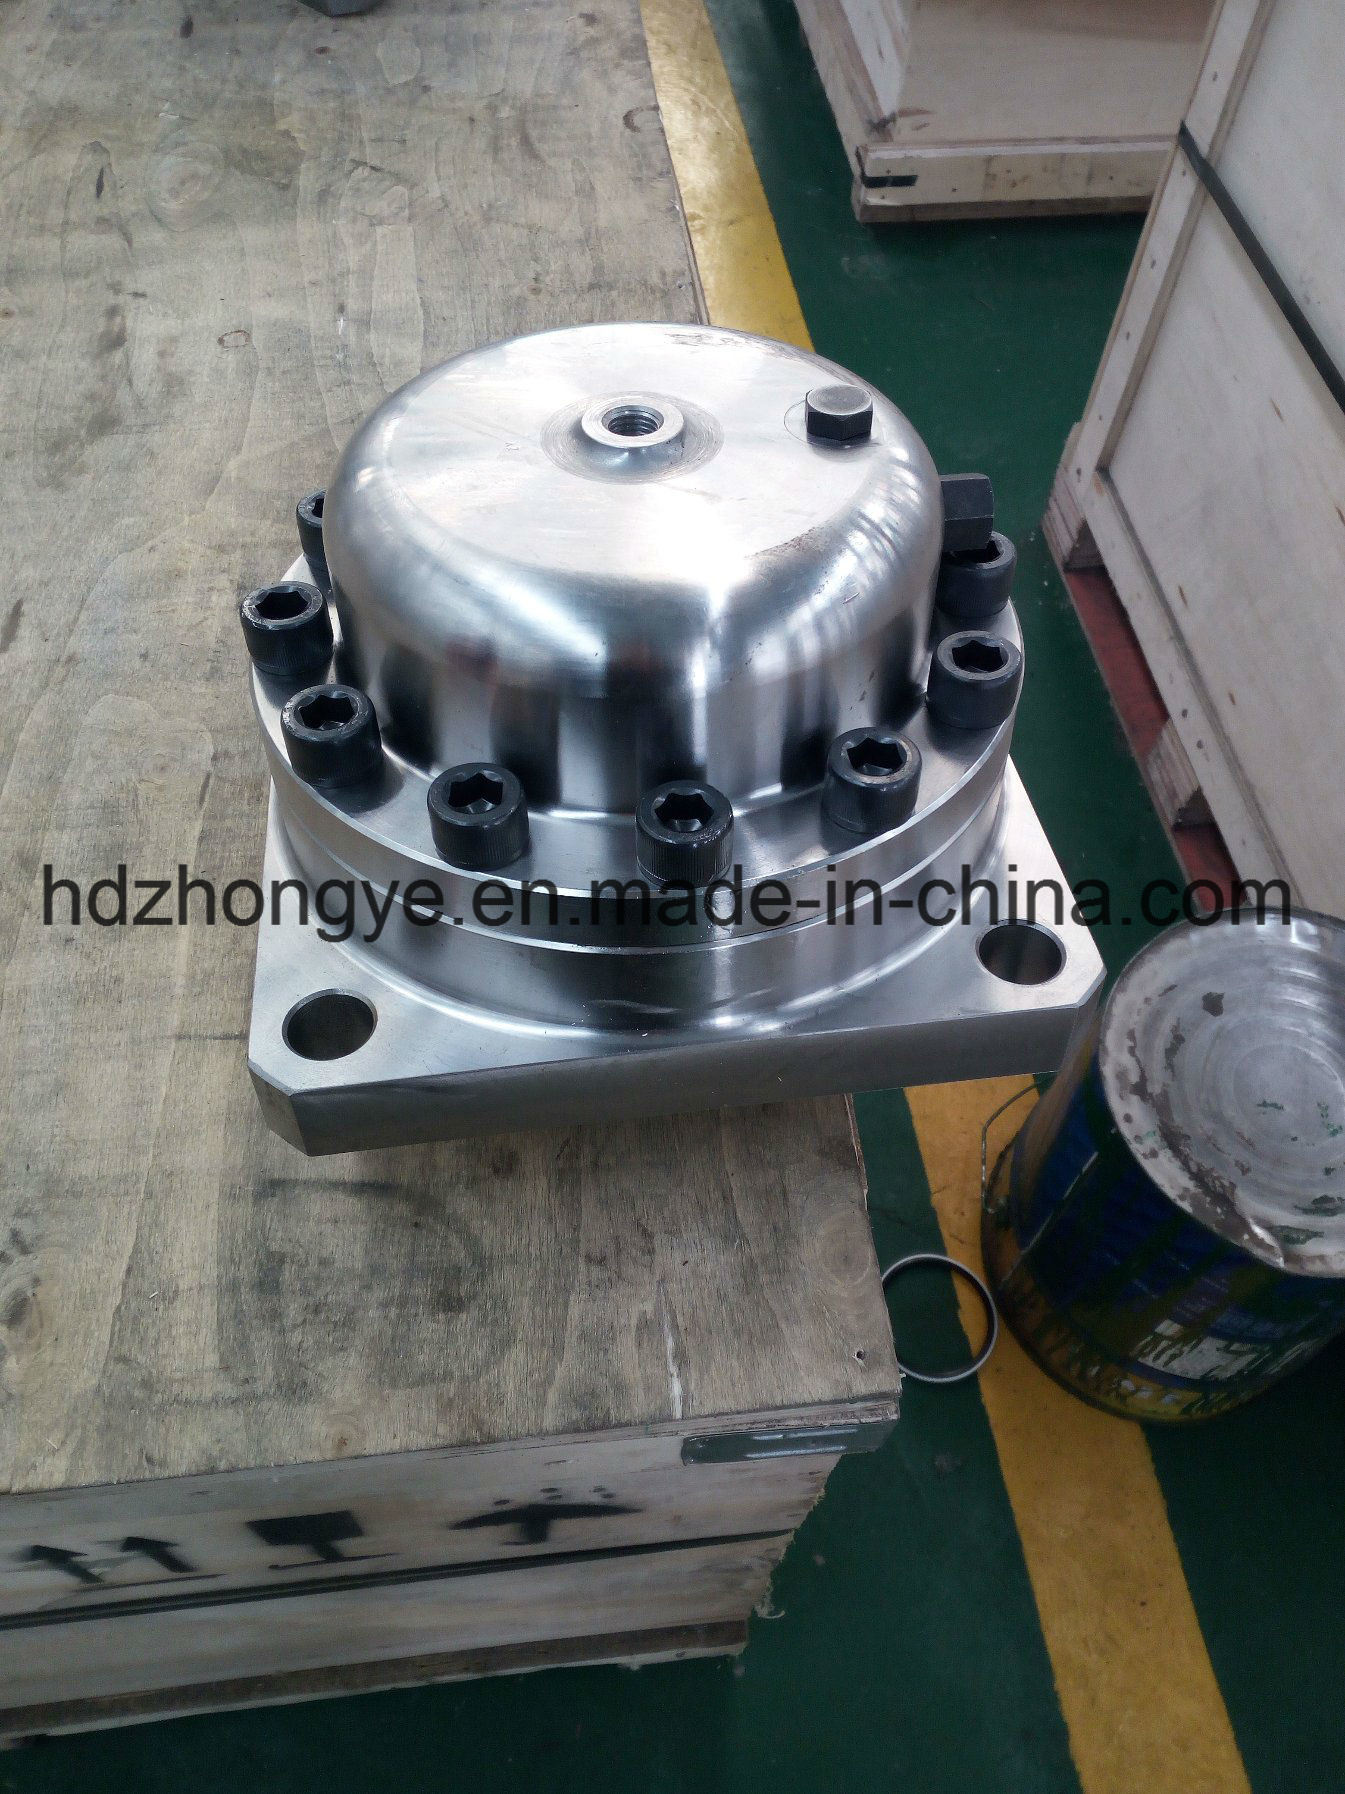 Accumulator for Hydraulic Breaker